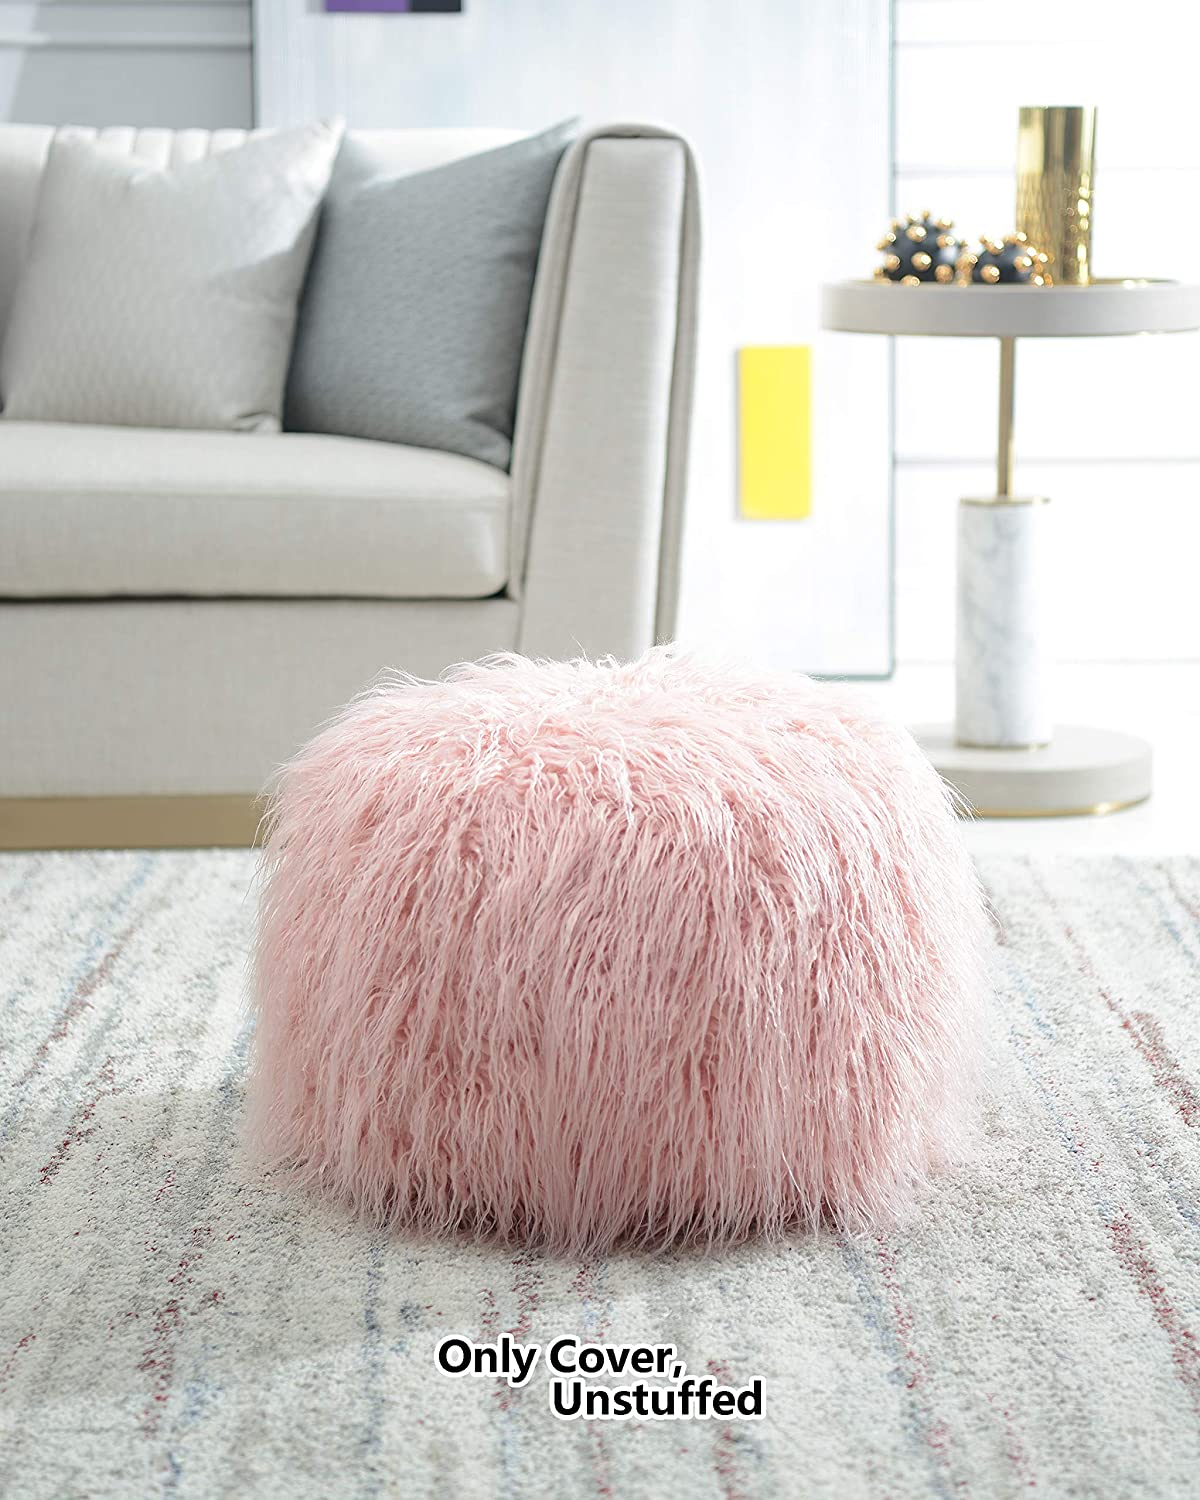 Comfortland Unstuffed Ottoman Pouf Covers, Small Faux Fur Foot Stool, 20x12 Inches Round Poof Seat, Floor Bean Bag Chair,Foot Rest Storage Solutions for Living Room, Bedroom, Kids Room Pink